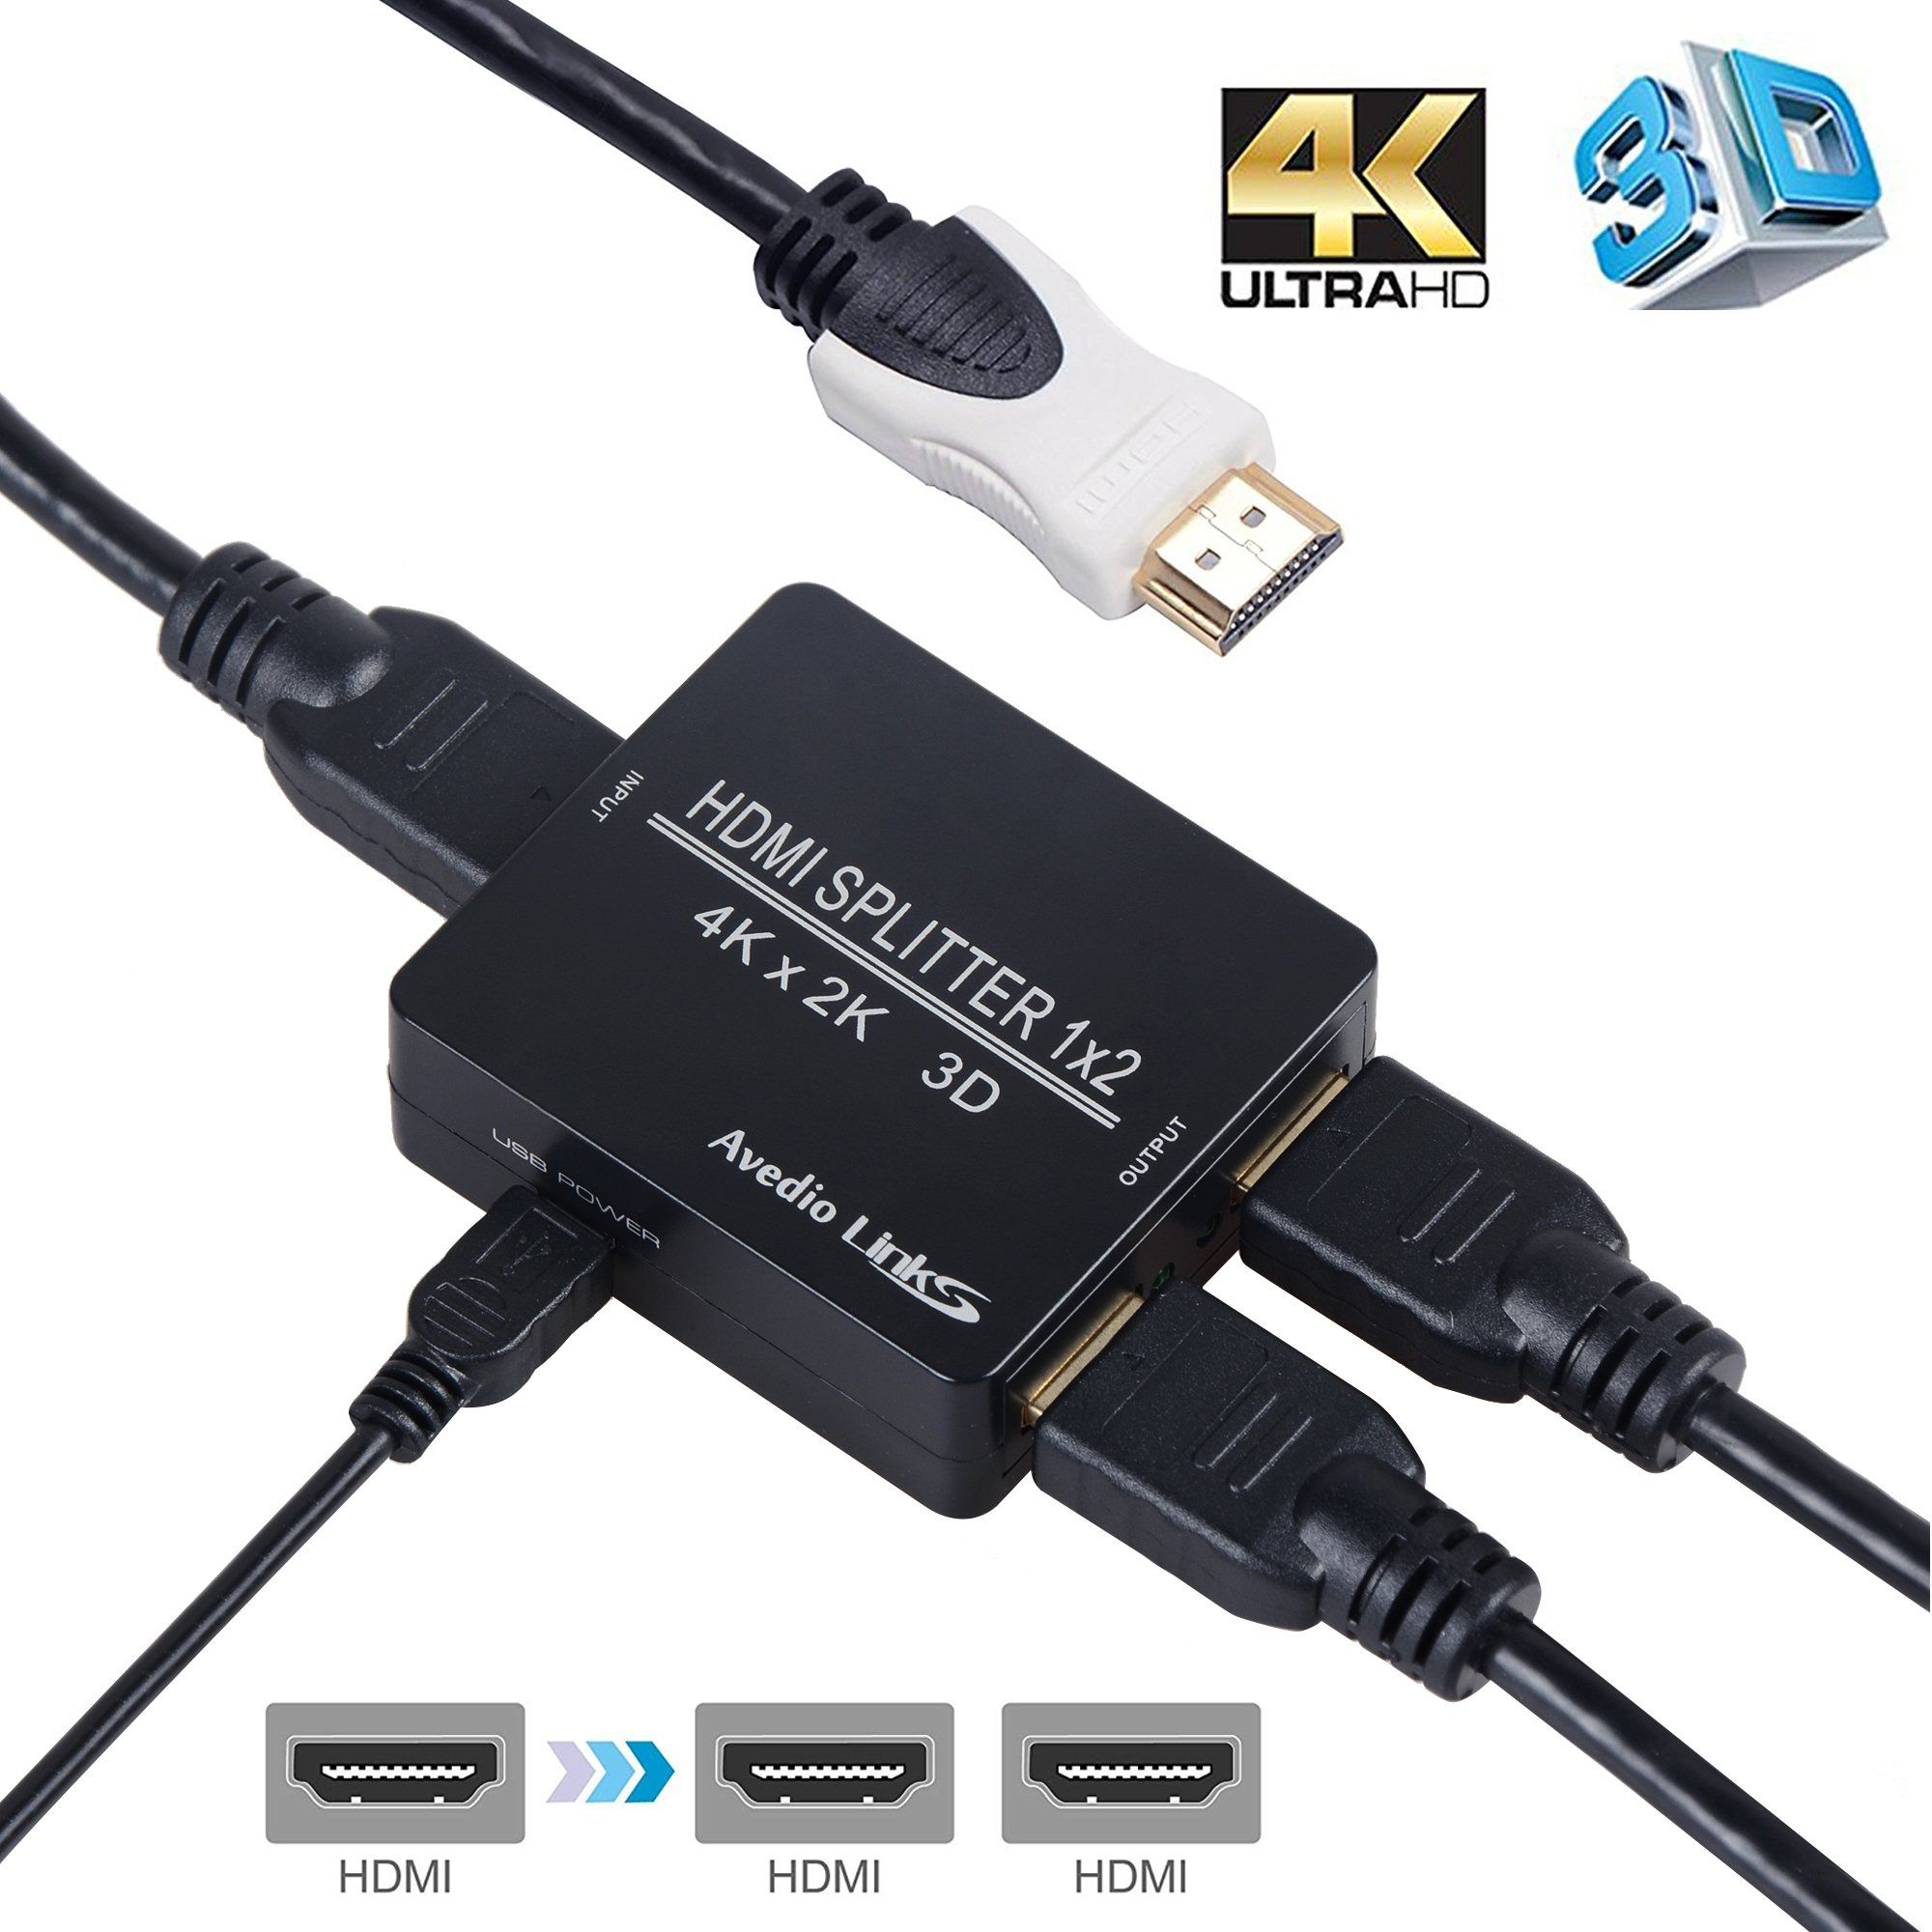 Hdmi Splitter 1 In 2 Out Avedio Links 4k Hdmi Splitter 1x2 With High Speed Hdmi Cable 1 Source To 2 Monitors Usb Cord For Xbox Hdmi Splitter Hdmi Cables Hdmi